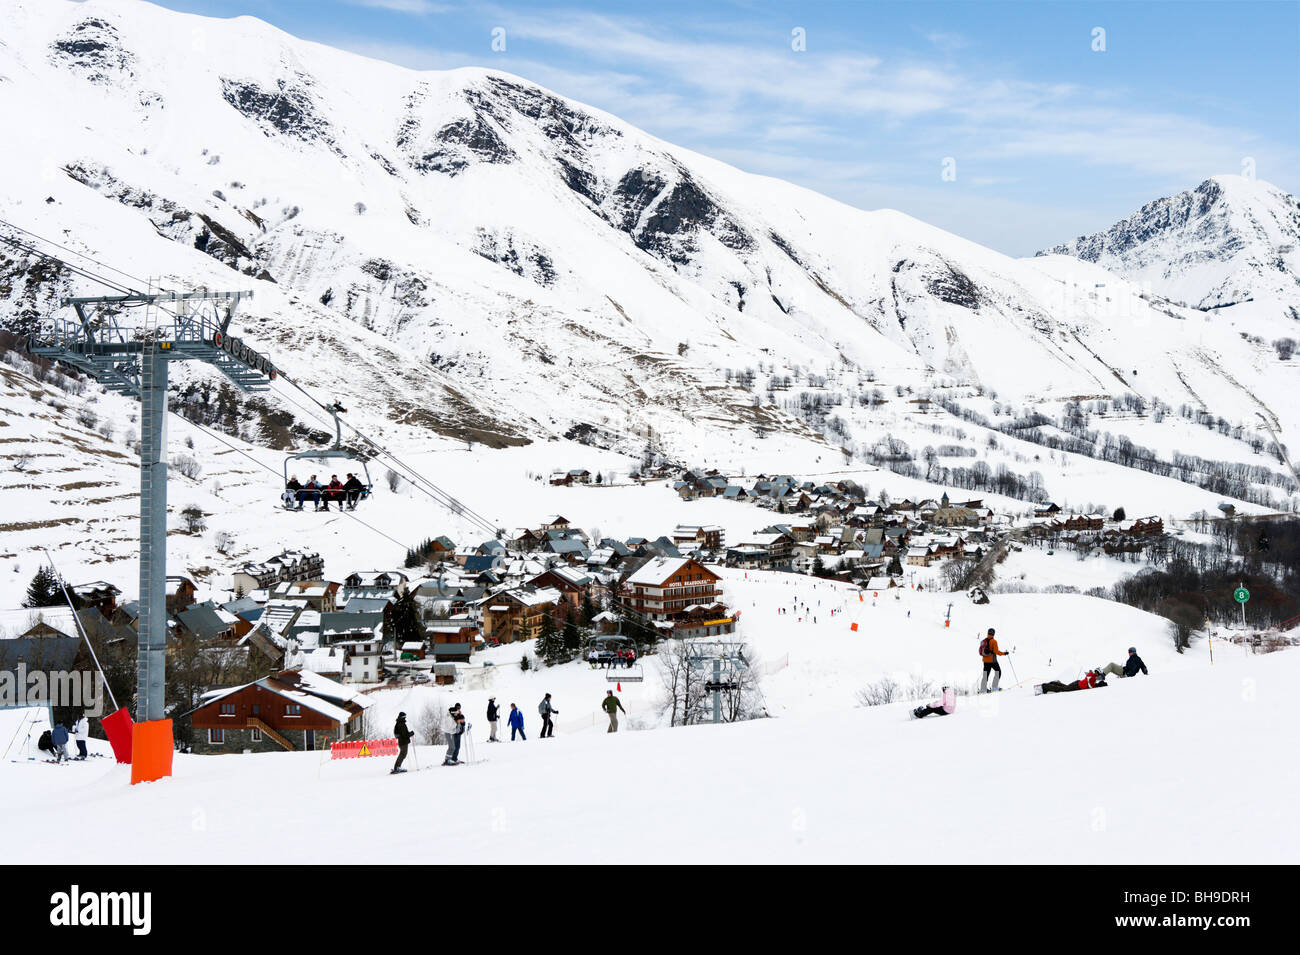 View from the slopes over the resort of St Sorlin d'Arves, Les Sybelles ski area, Maurienne massif, France - Stock Image